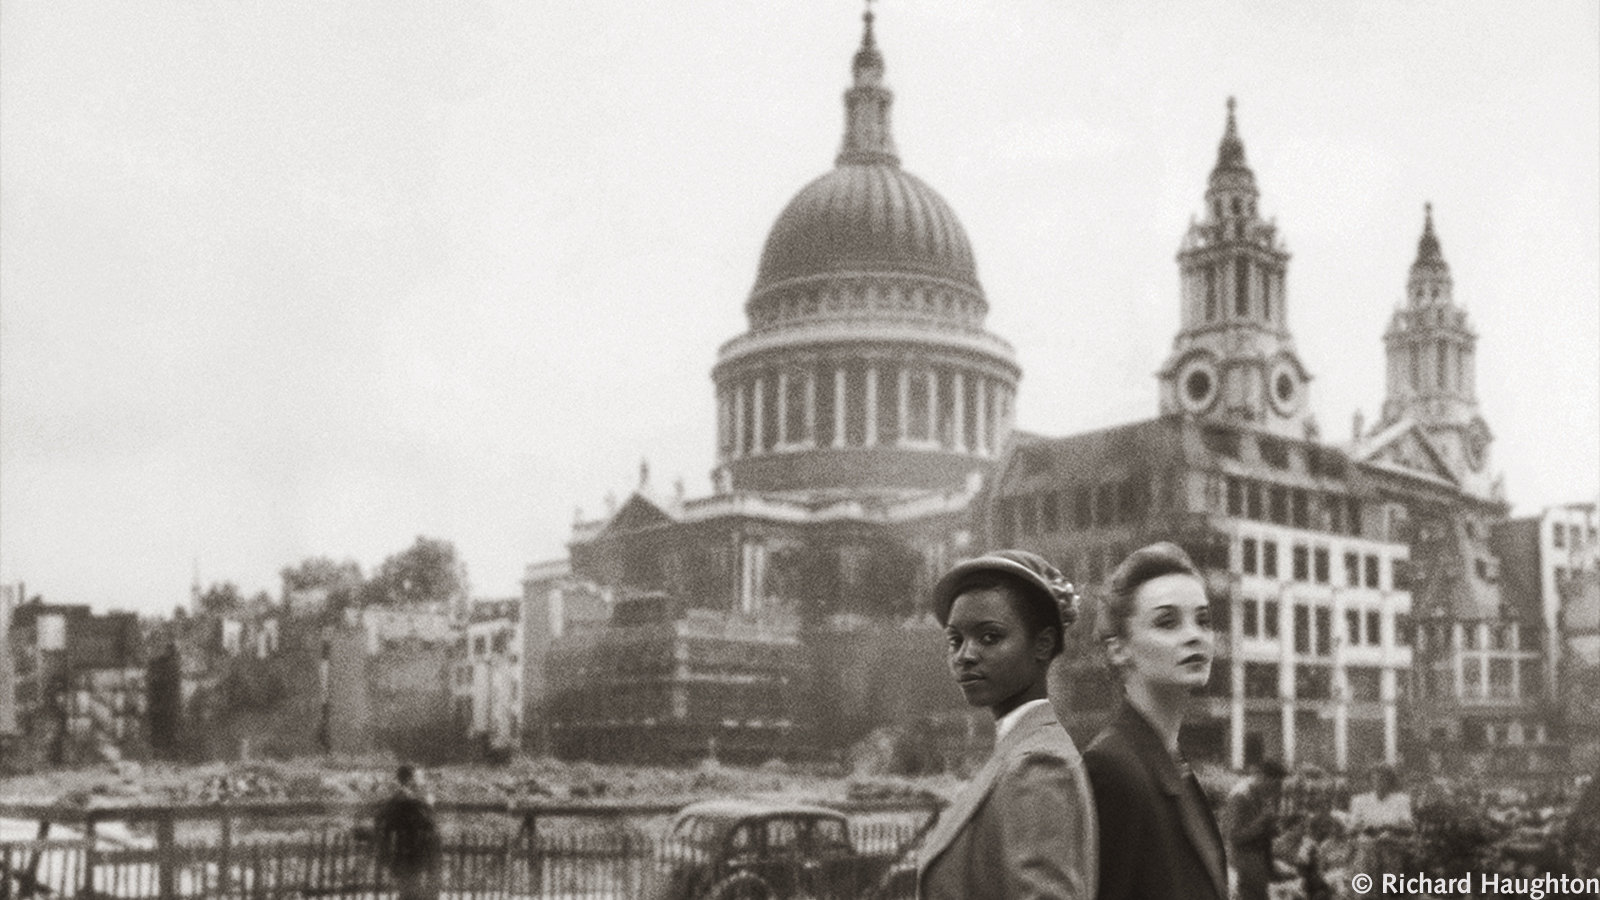 (c) Richard Haughton, book cover from Levy's 2004 Small Island, two women walking past St Pauls